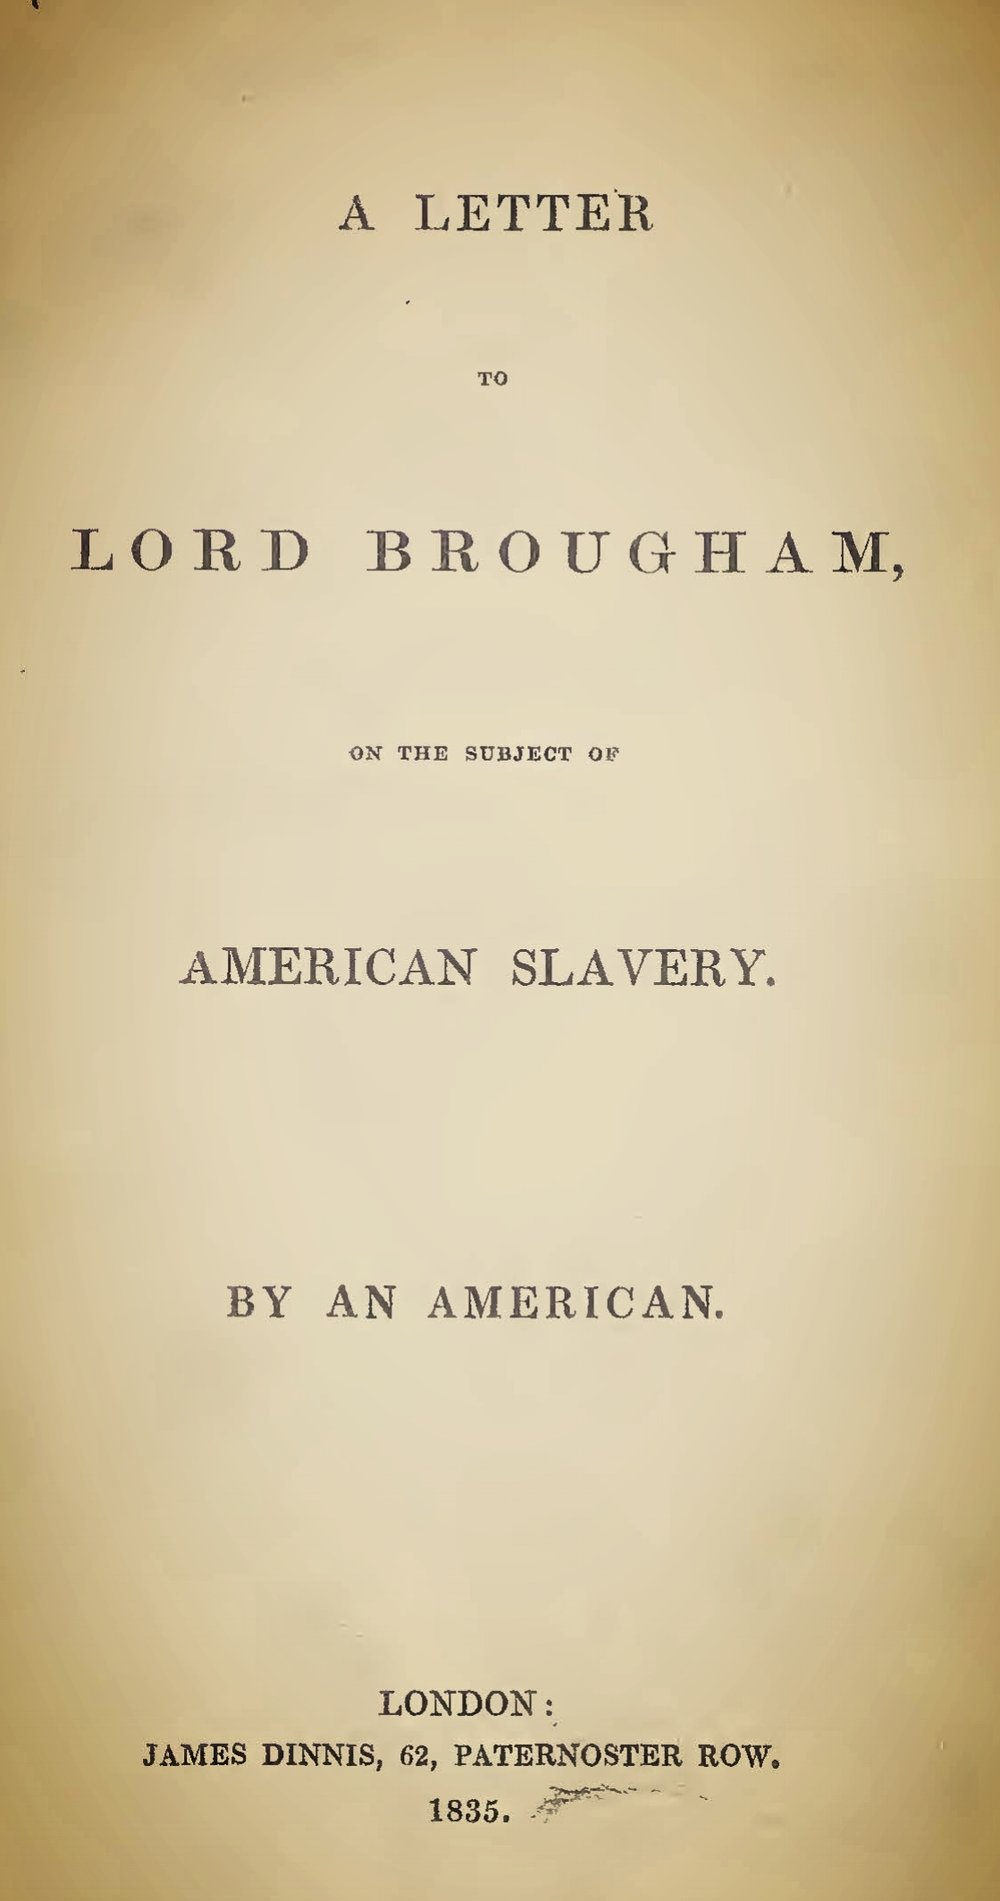 Baird, Robert, A Letter to Lord Brougham on the Subject of American Slavery Title Page.jpg